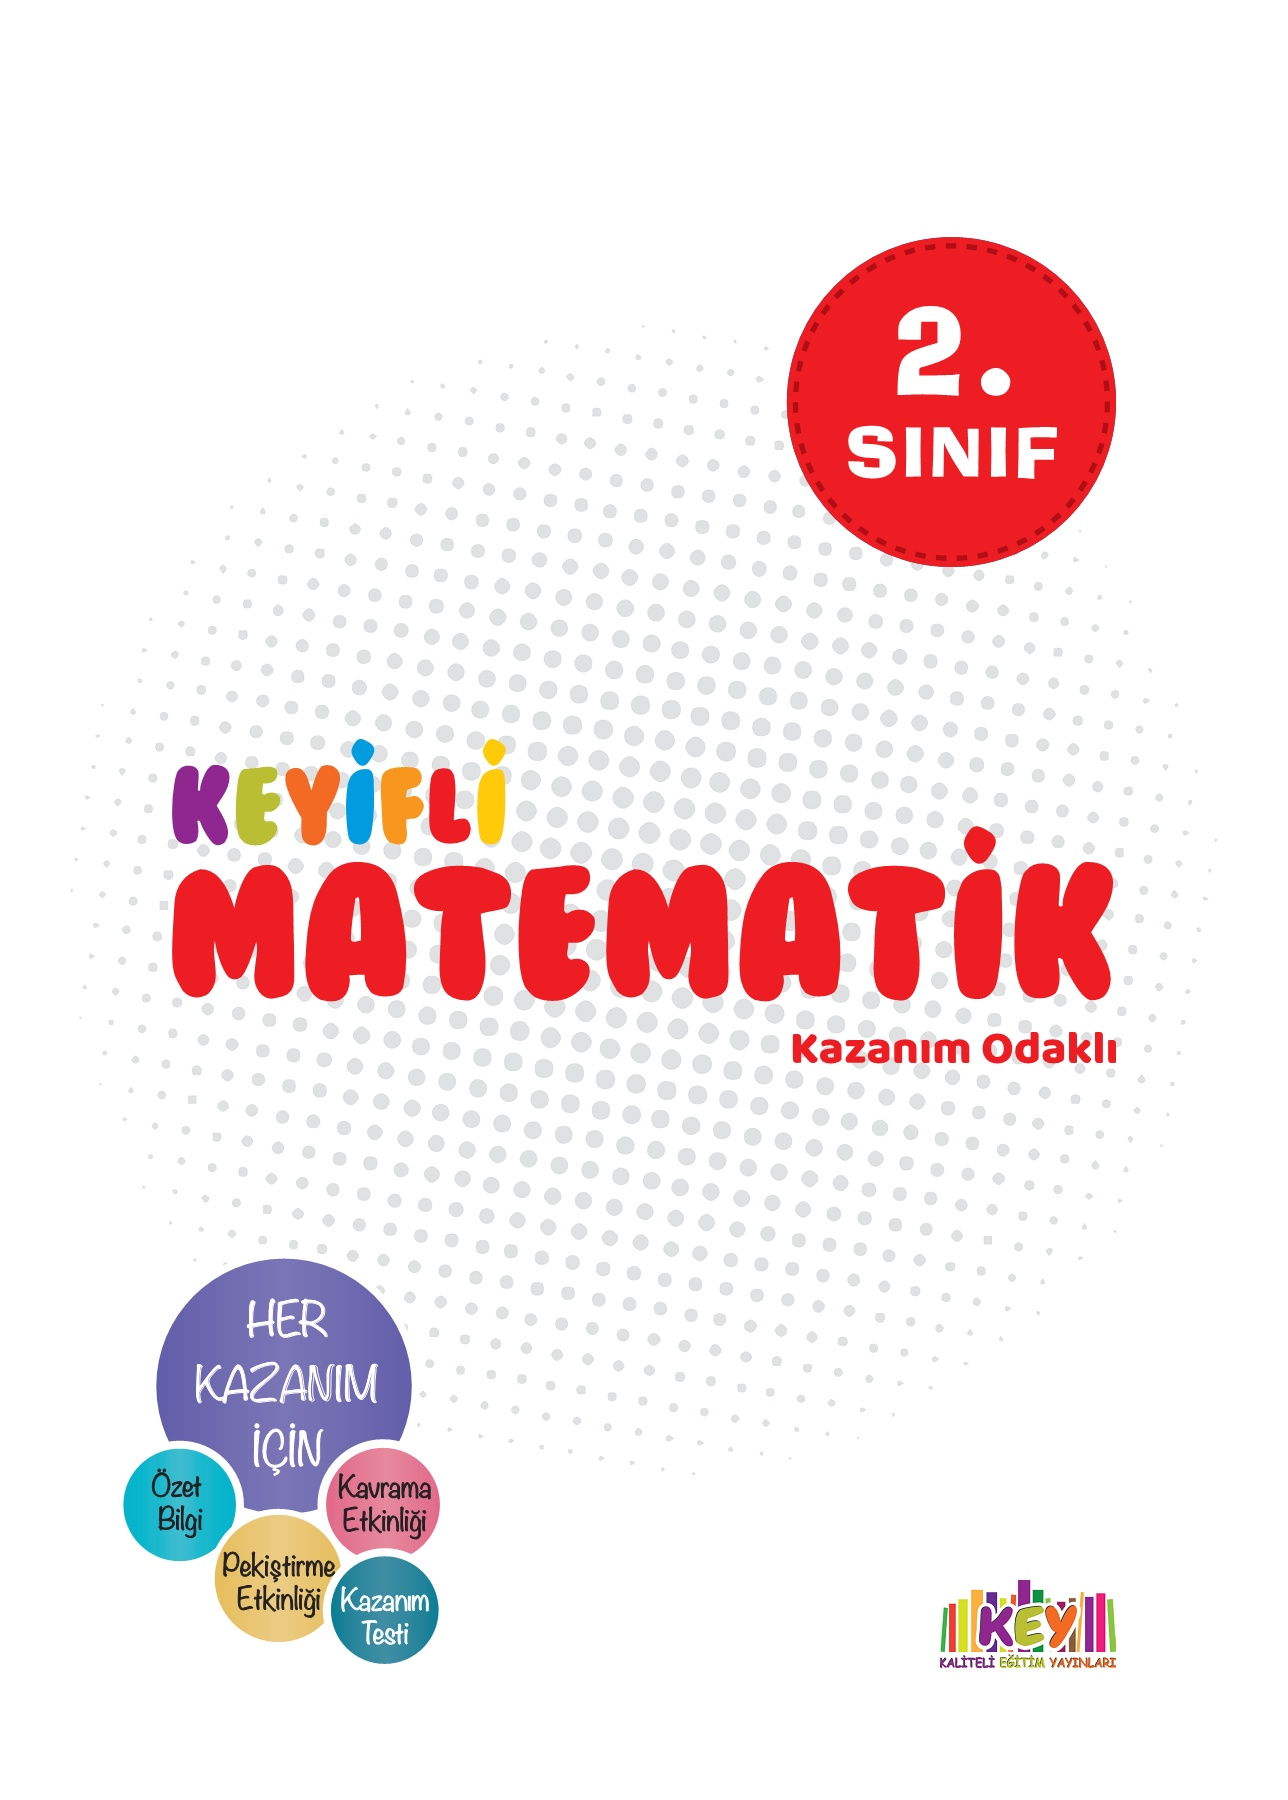 2 Sinif Keyifli Matematik Pages 1 20 Text Version Anyflip